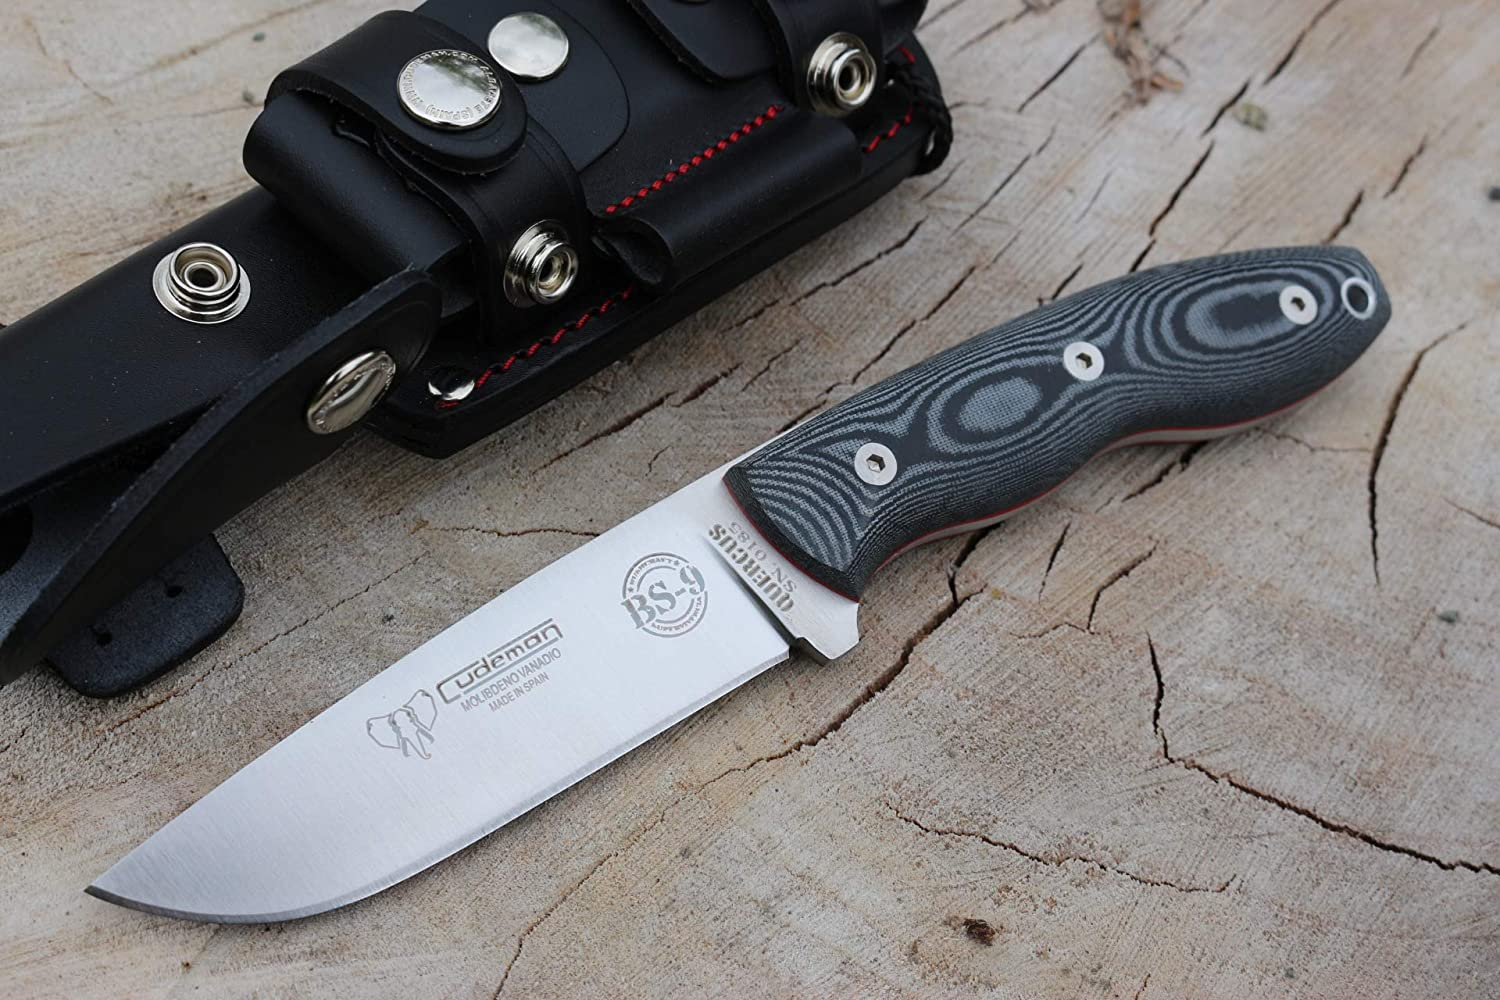 Cudeman Survival Knife BS9.160-MC, Black micarta, Blade of 4.3 inches, Handle 4.9 inches, Sportive, Multiposition Sheath, Camping Tool, Hunting, Sport ...